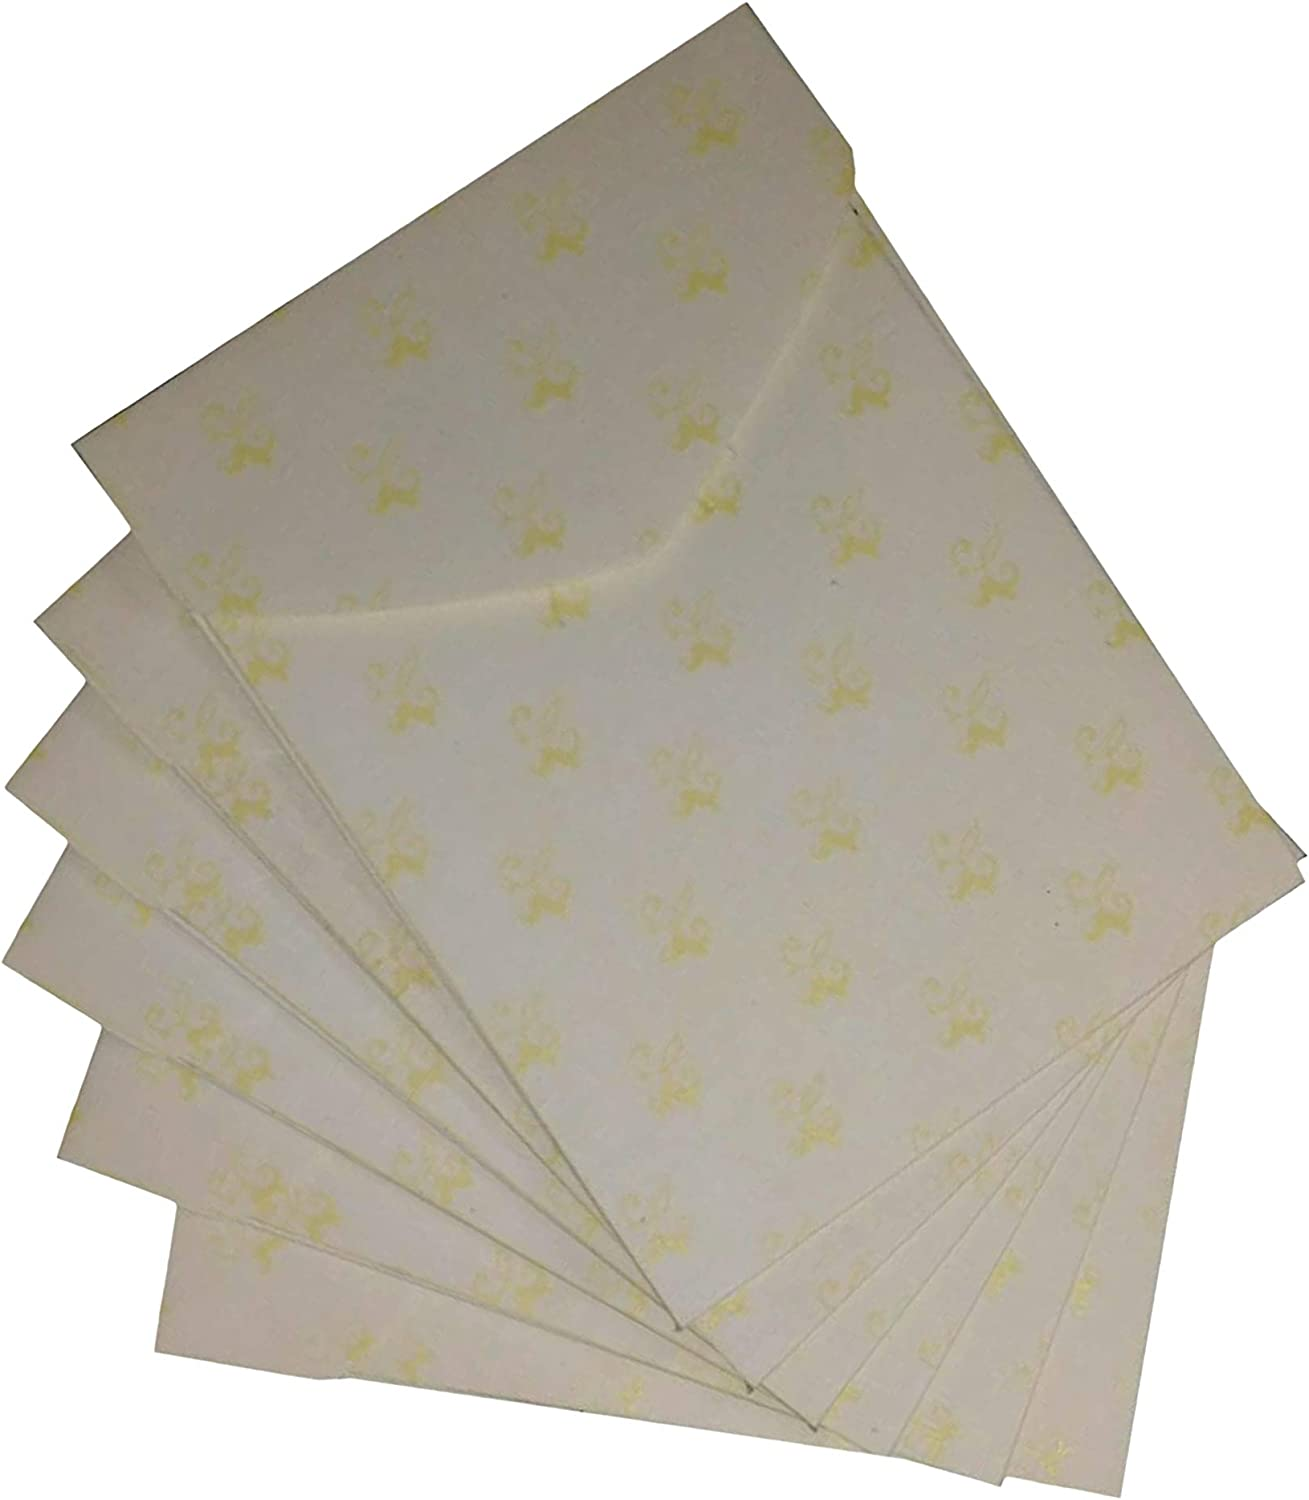 inch Approx IMPRINT Off White Royal Look Thick Sheet Small//Pocket Like Envelops 4.5 x 3.5 Pack of 20